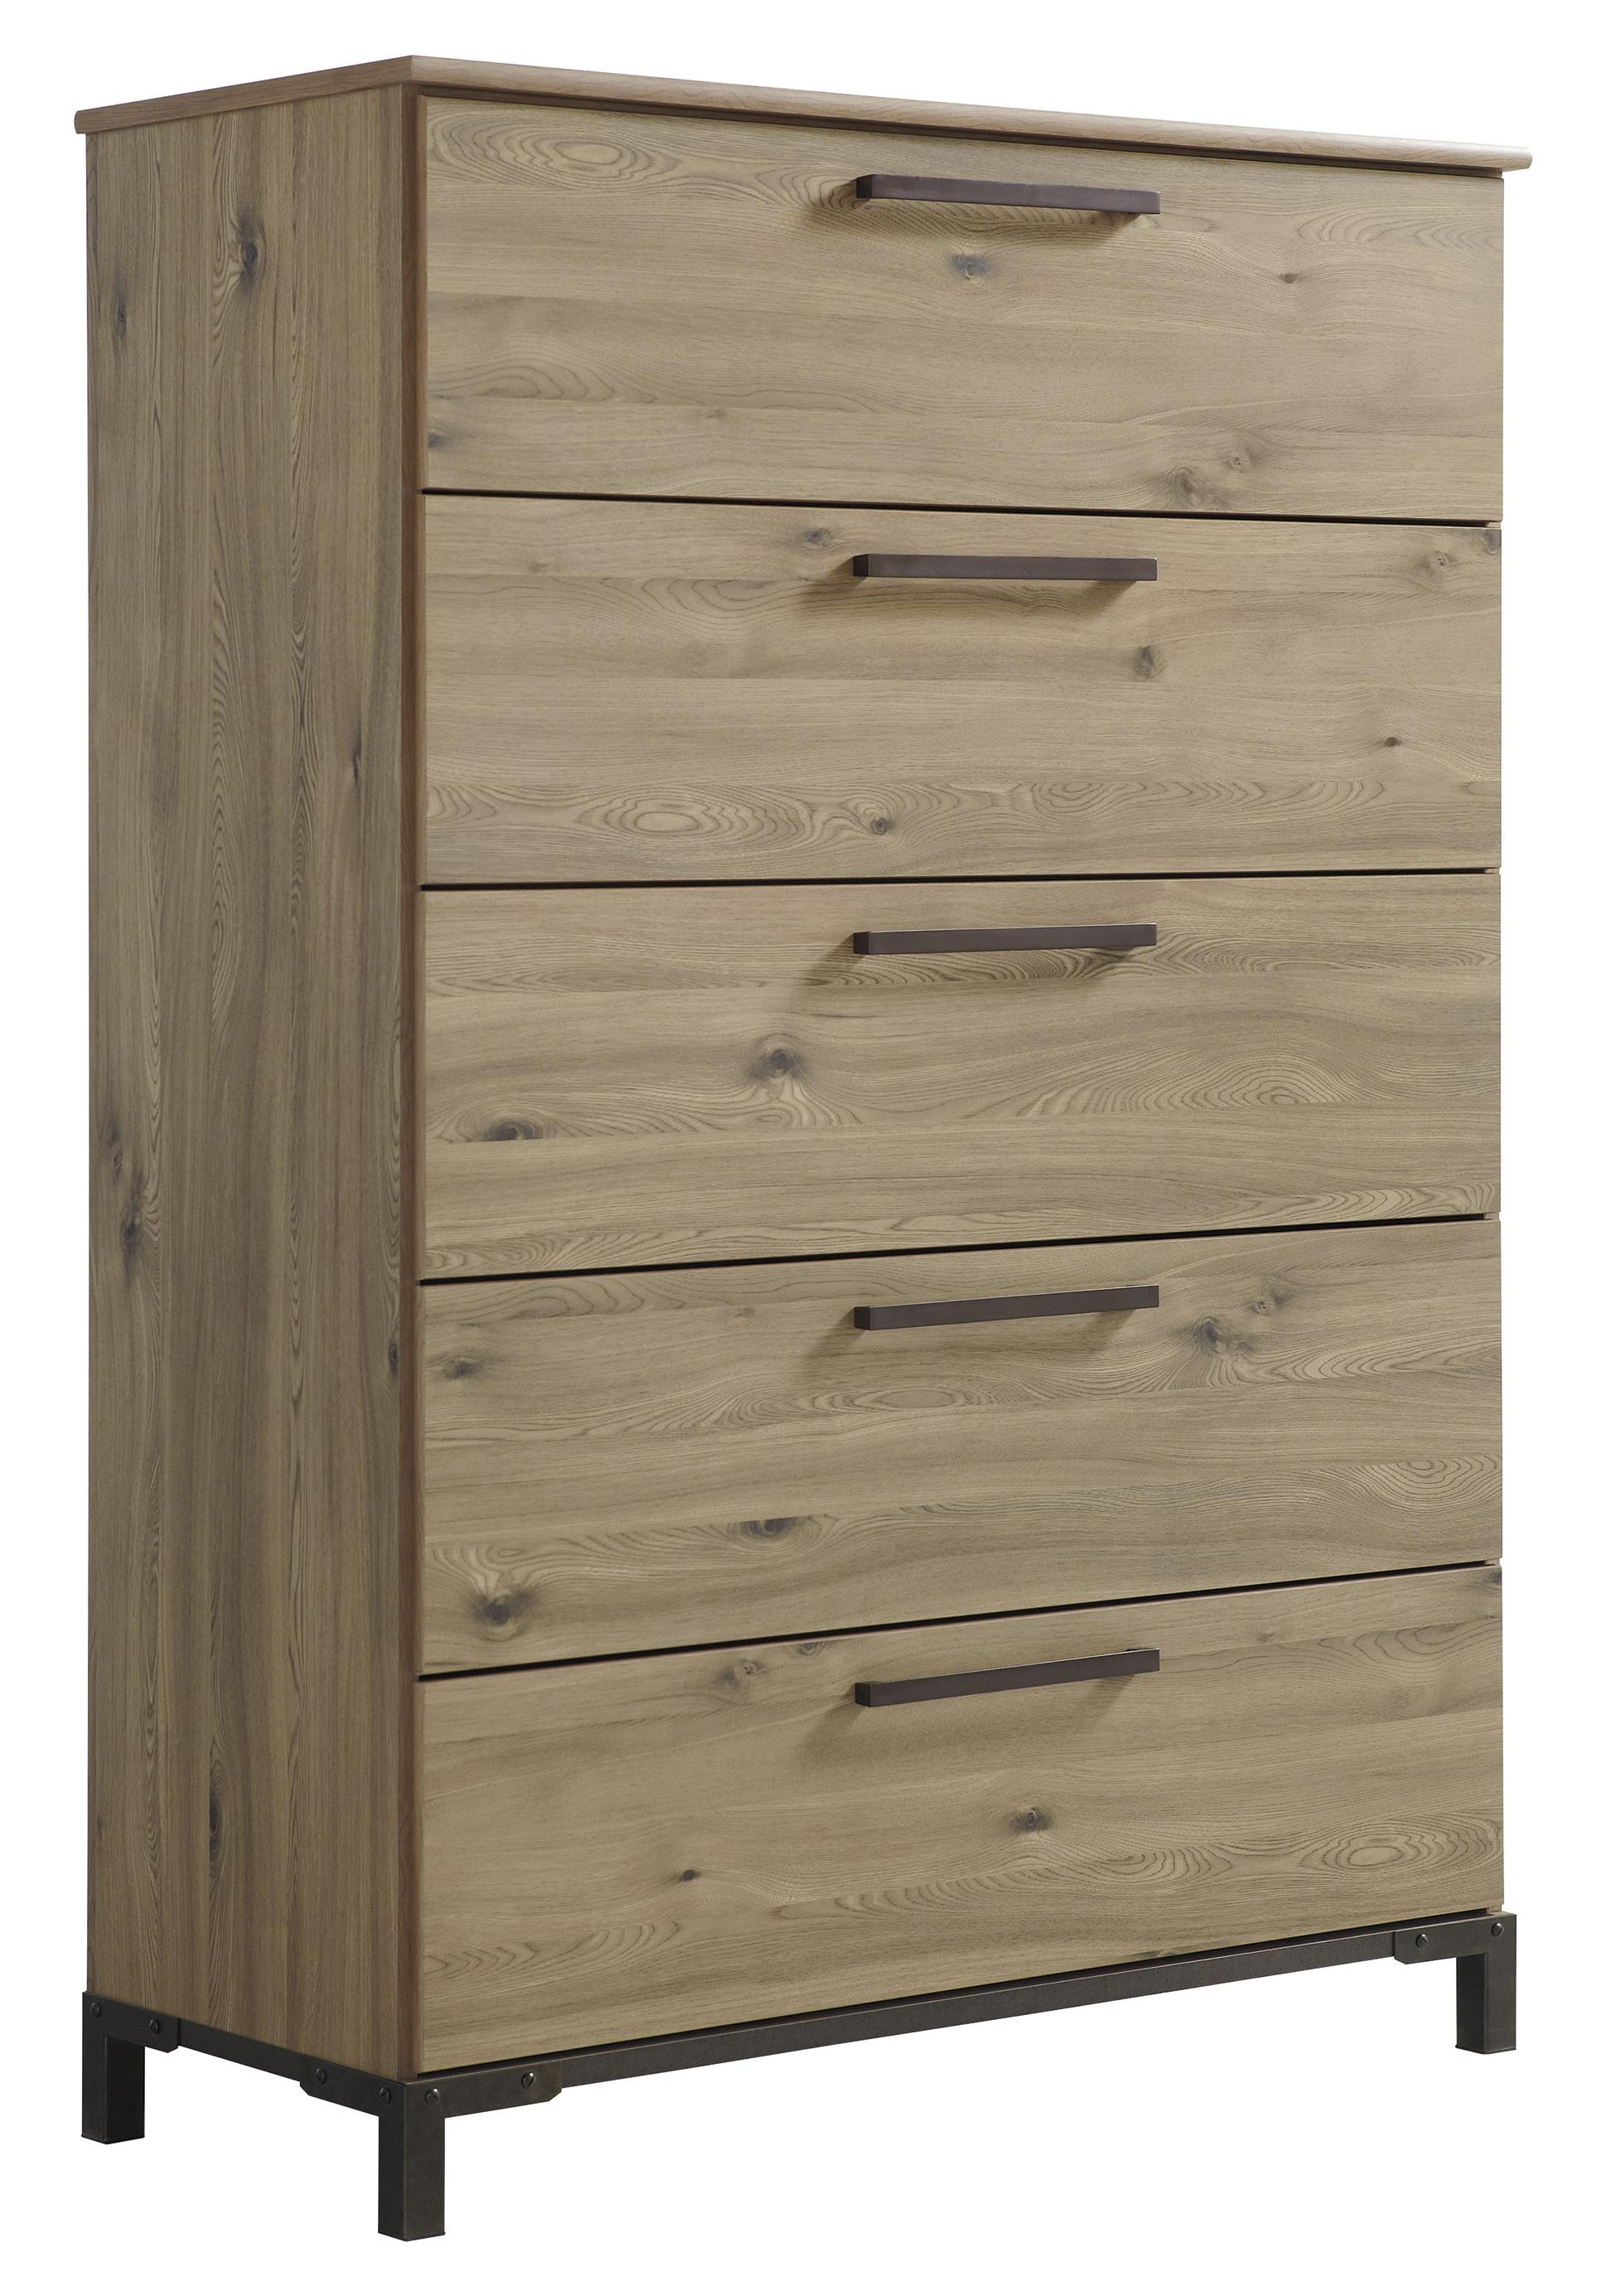 Signature Design by Ashley Dexifield Five Drawer Chest - Item Number: B298-46